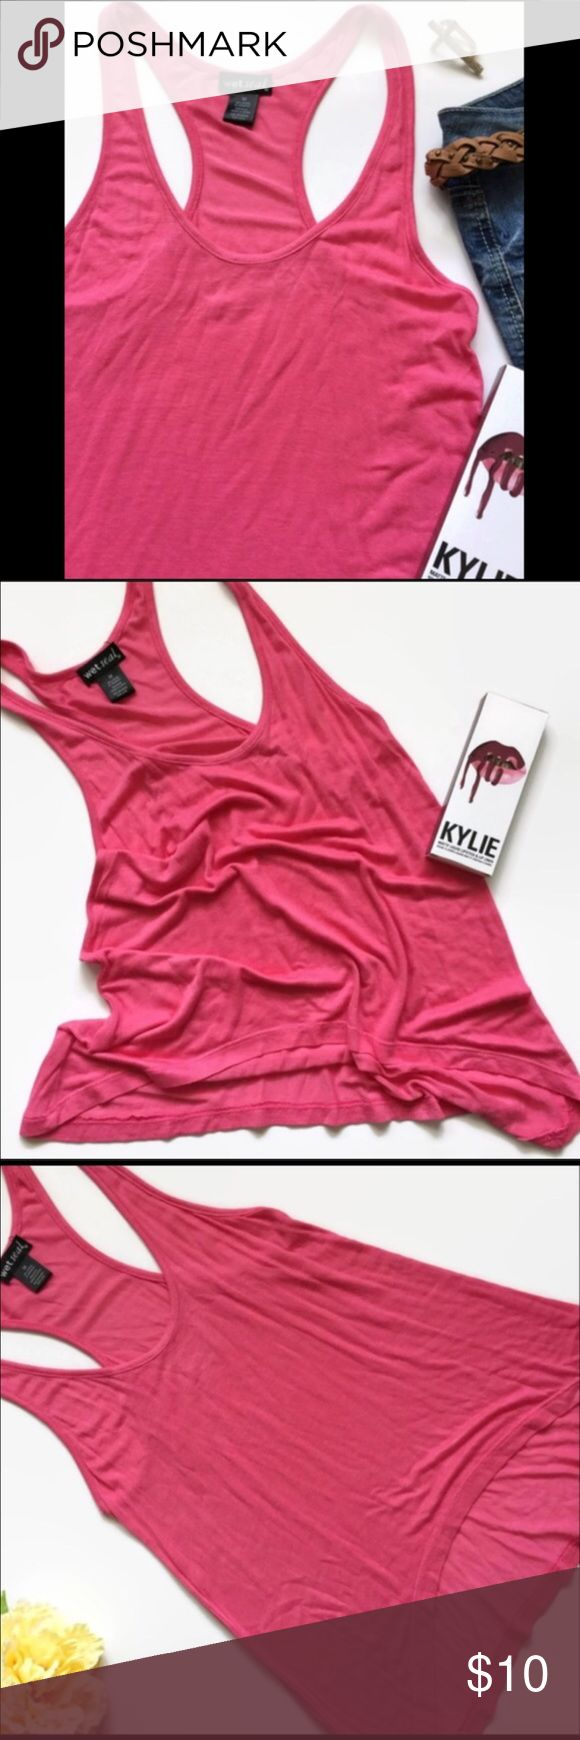 Pinkie swear tank Soft pink hi-lo tank. Light weight. Throw this on with your fav shorts & go about the hot summer day! Can never have enough tanks! New without tags. Wet Seal Tops Tank Tops